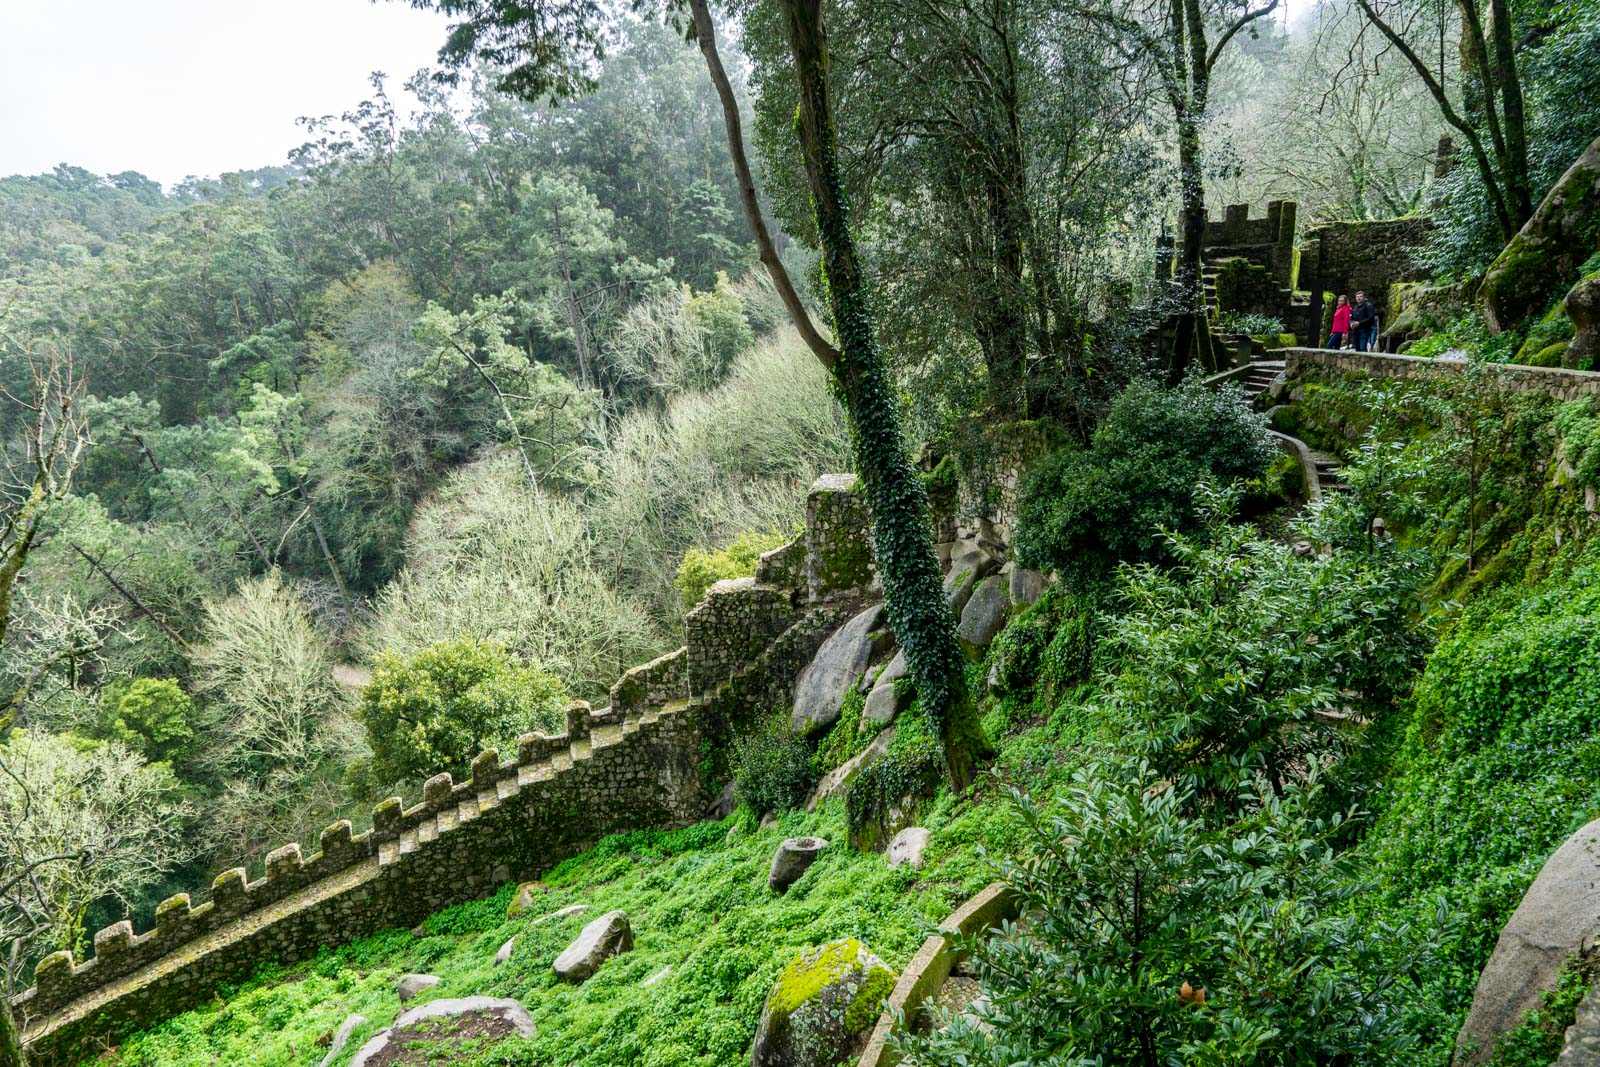 One day trip to Sintra from Lisbon, Portugal